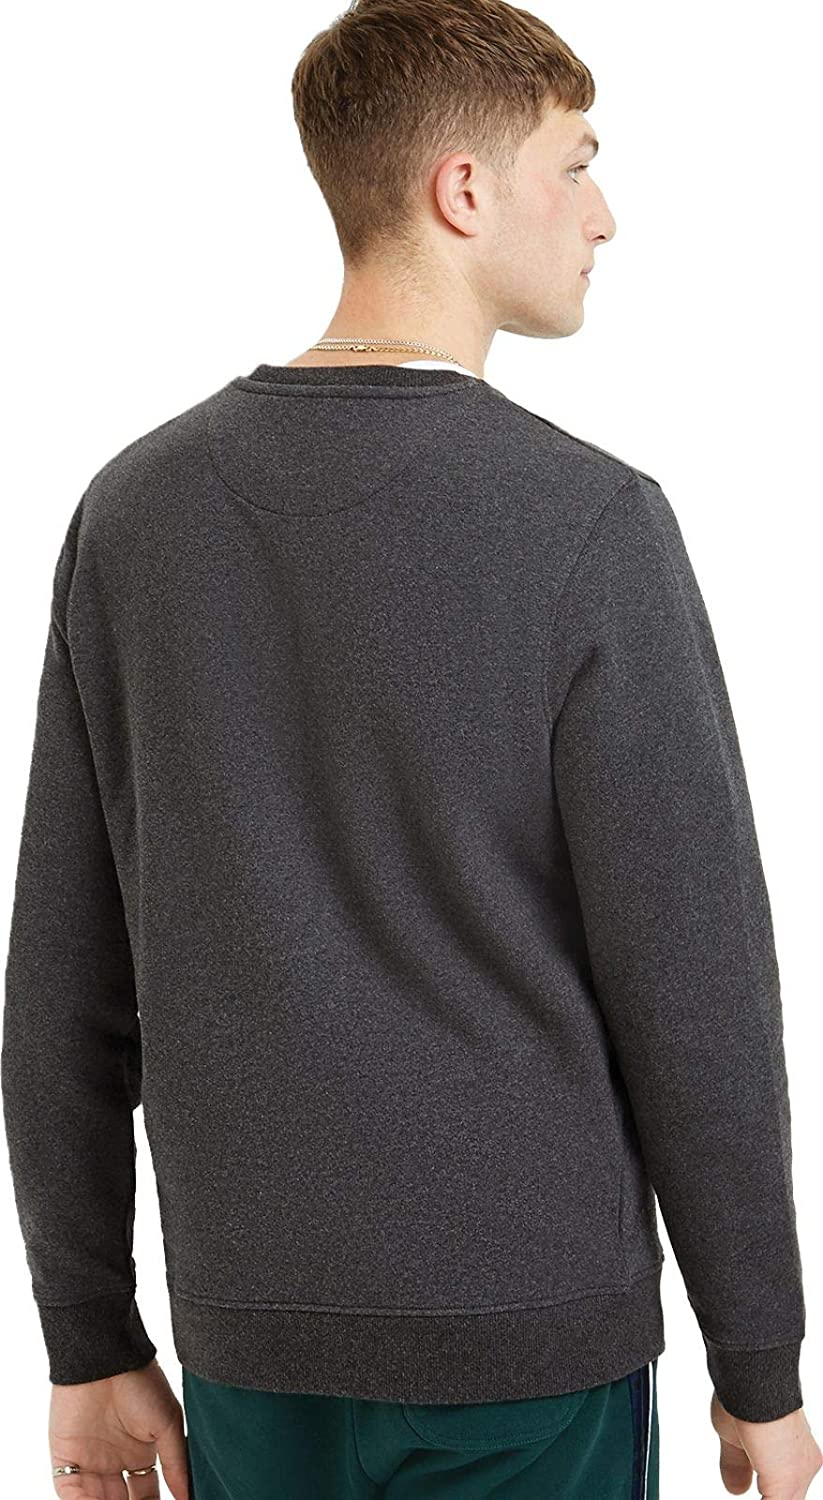 Lyle & Scott Crew Neck Sweatshirt voor heren Grijs